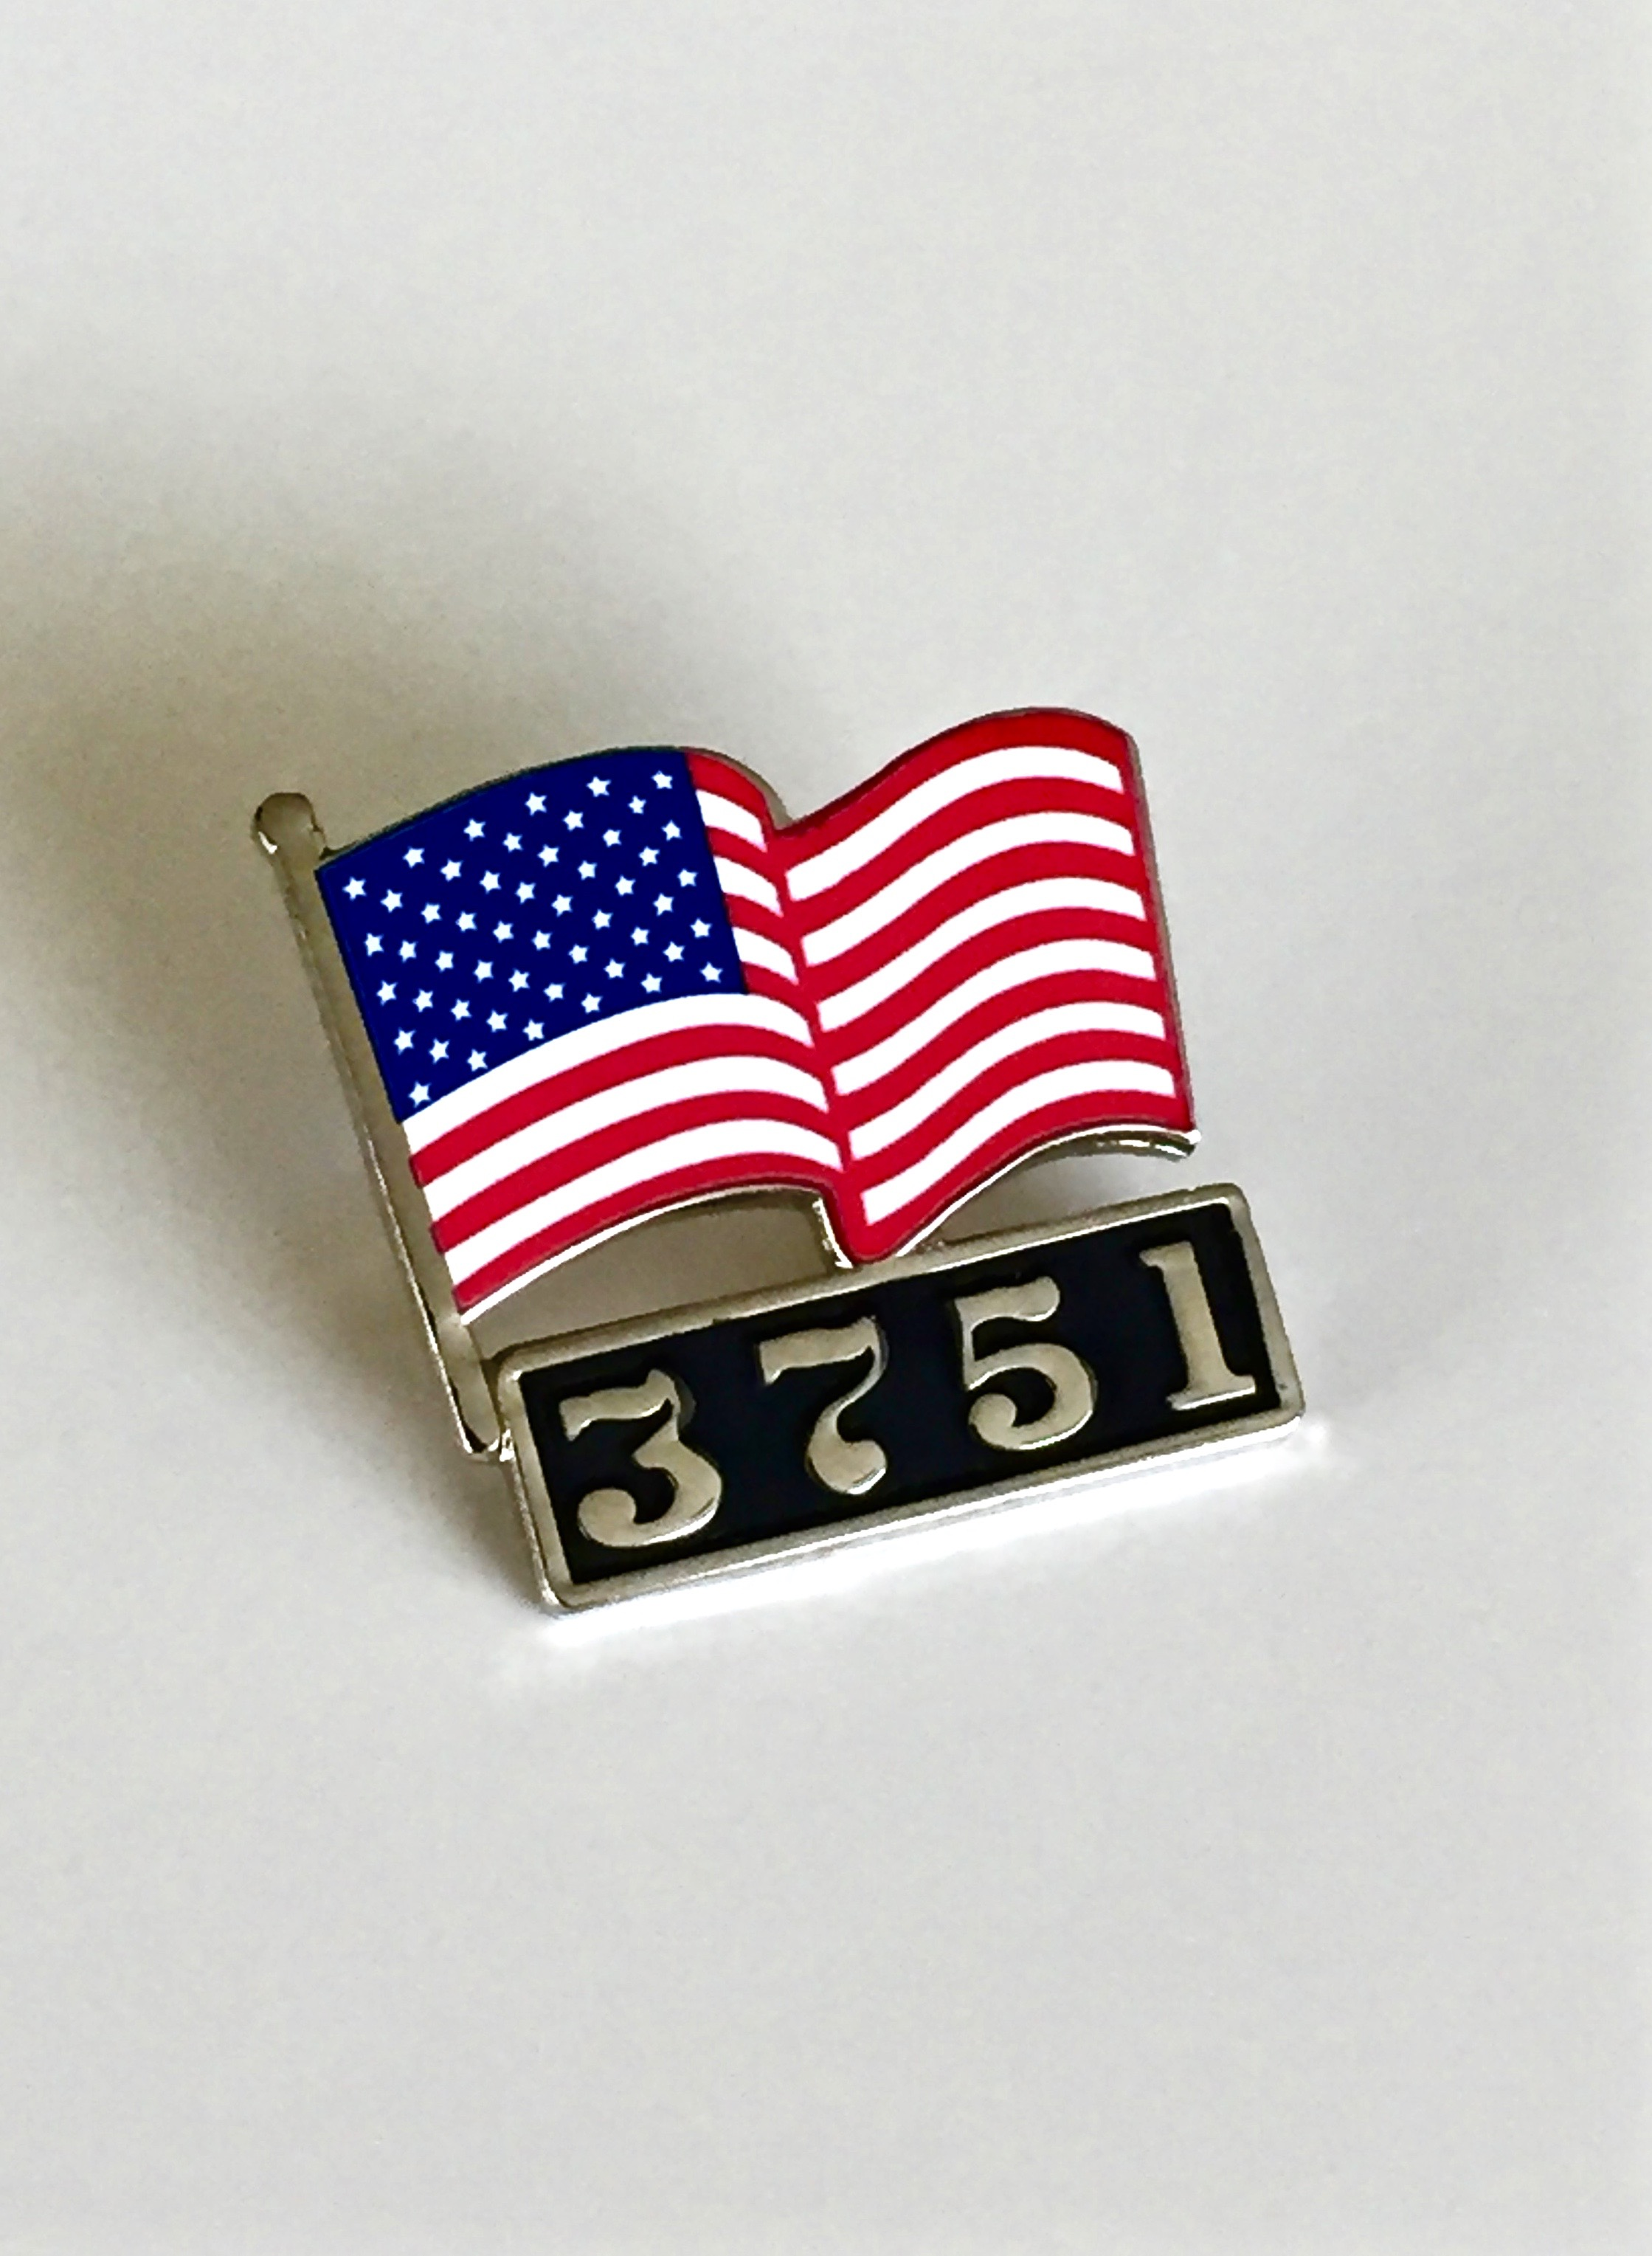 3751 - American Flag Lapel Pin